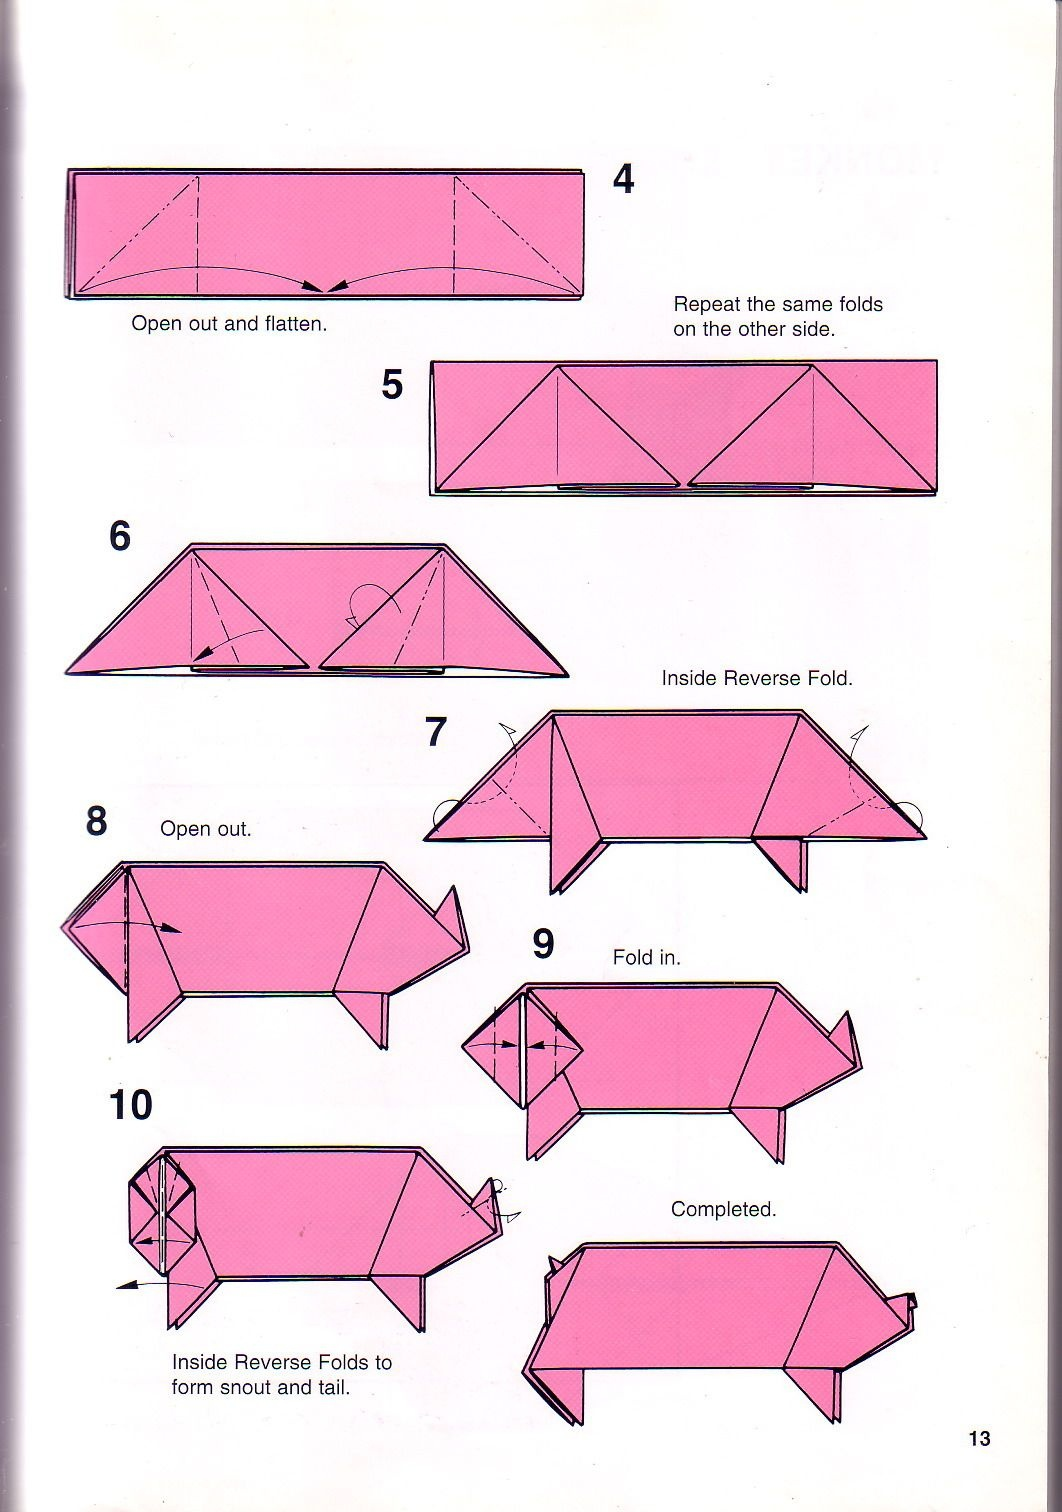 Pig Origami Instructions | Origami Printable Instructions | Origami - Free Easy Origami Instructions Printable